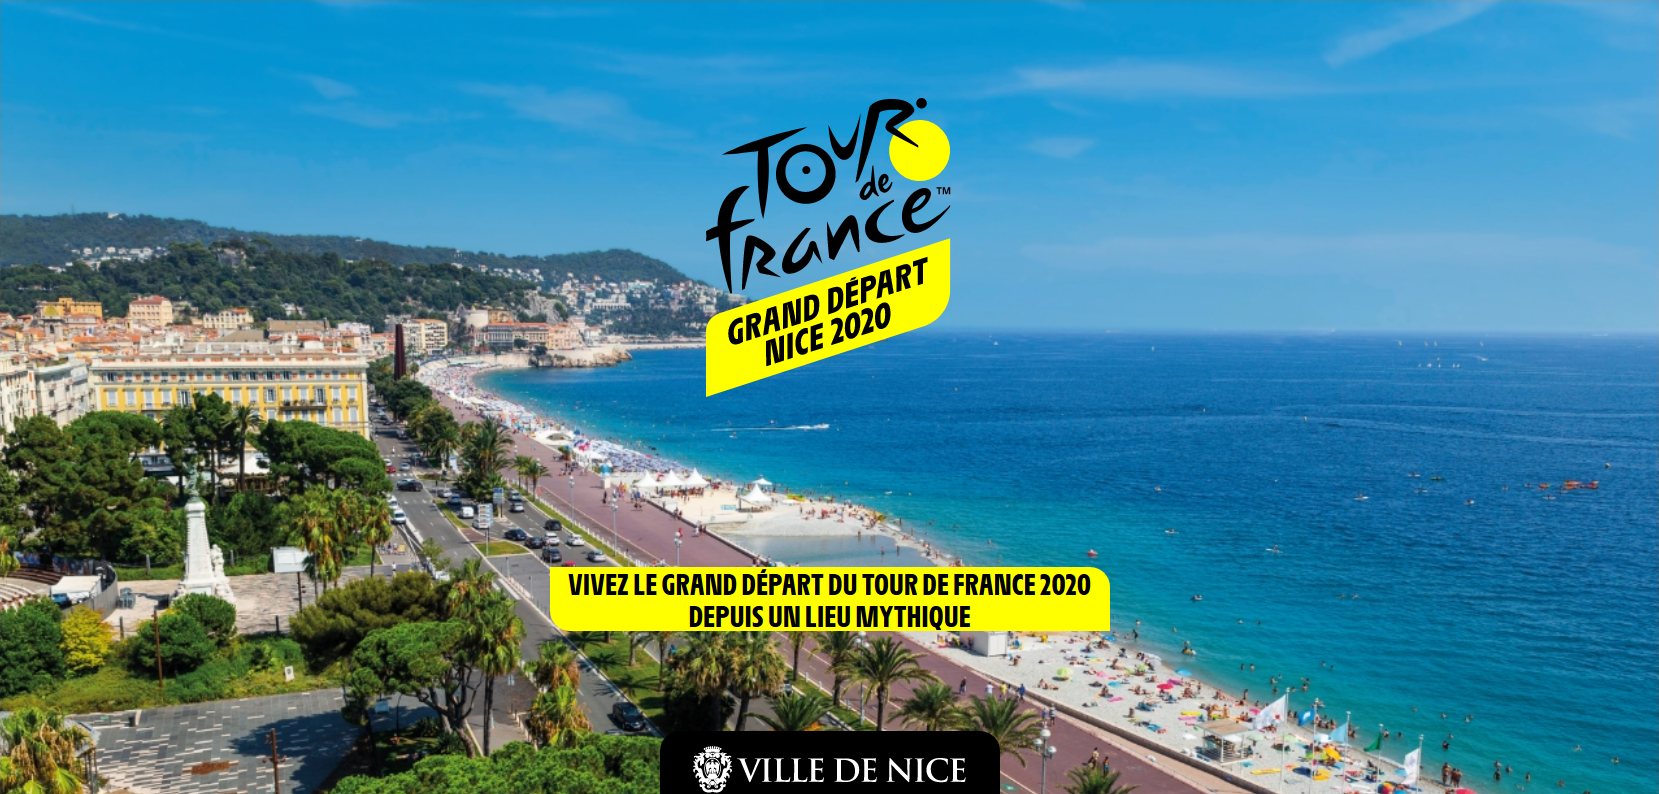 Illustration pour la mission Grand Départ du Tour de France 2020 à Nice